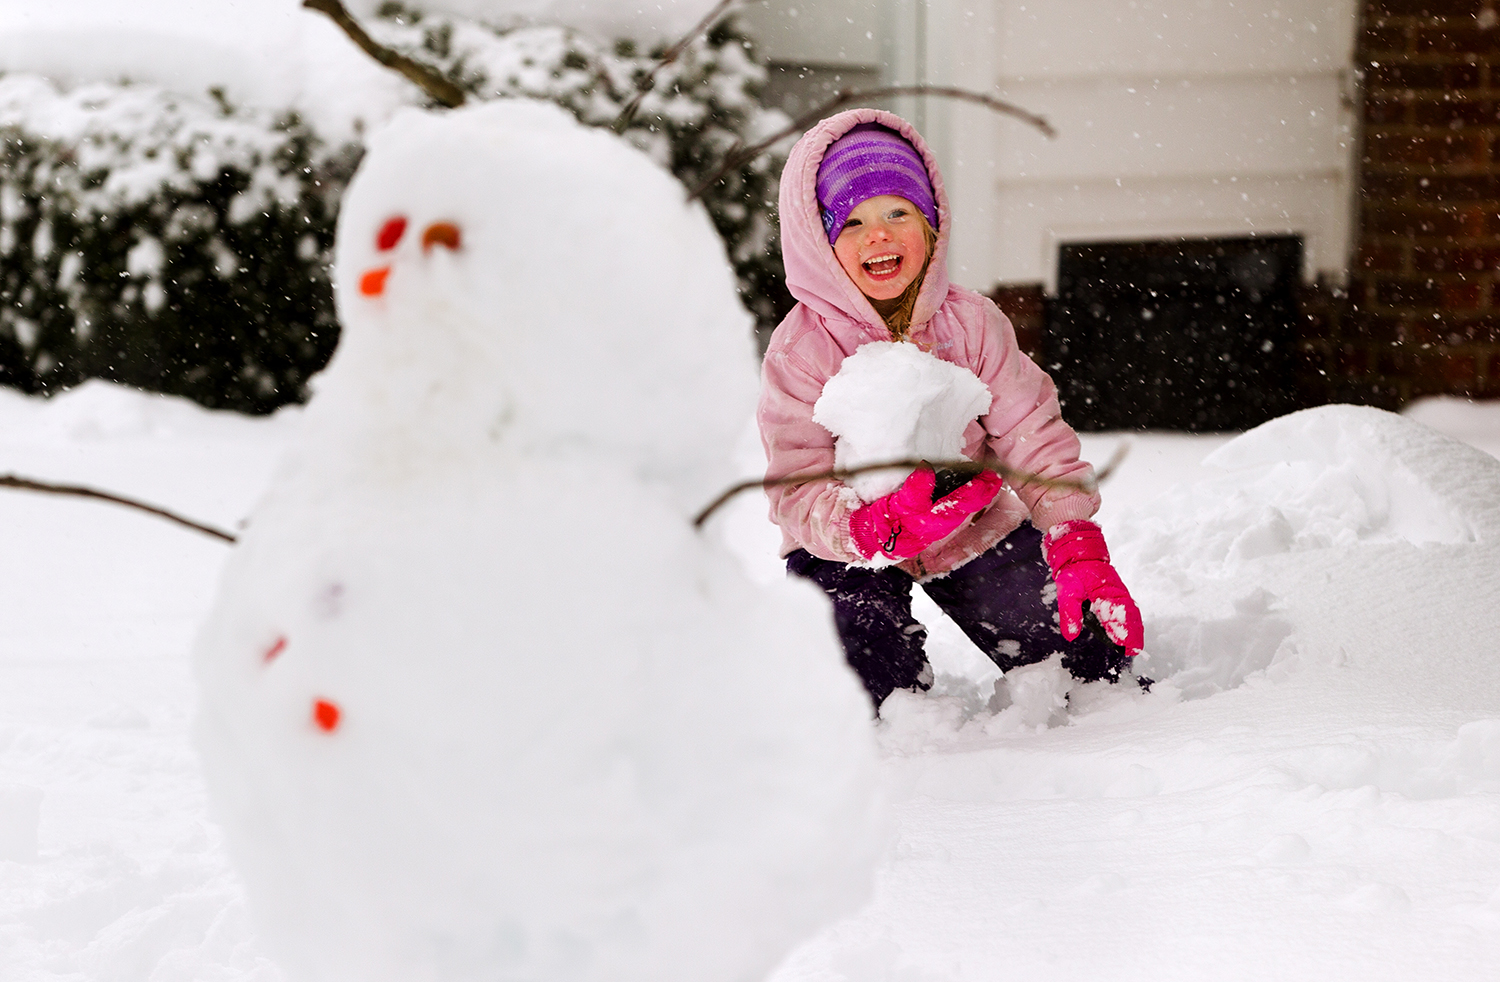 Eleanor Orzechowski laughs as she gathers an armful of snow in her front yard Saturday, Jan. 12, 2019. Her family had cleared the driveway, made a snowman and was working on a snow wall with some of the more than 10 inches of snow that had fallen by noon. [Ted Schurter/The State Journal-Register]